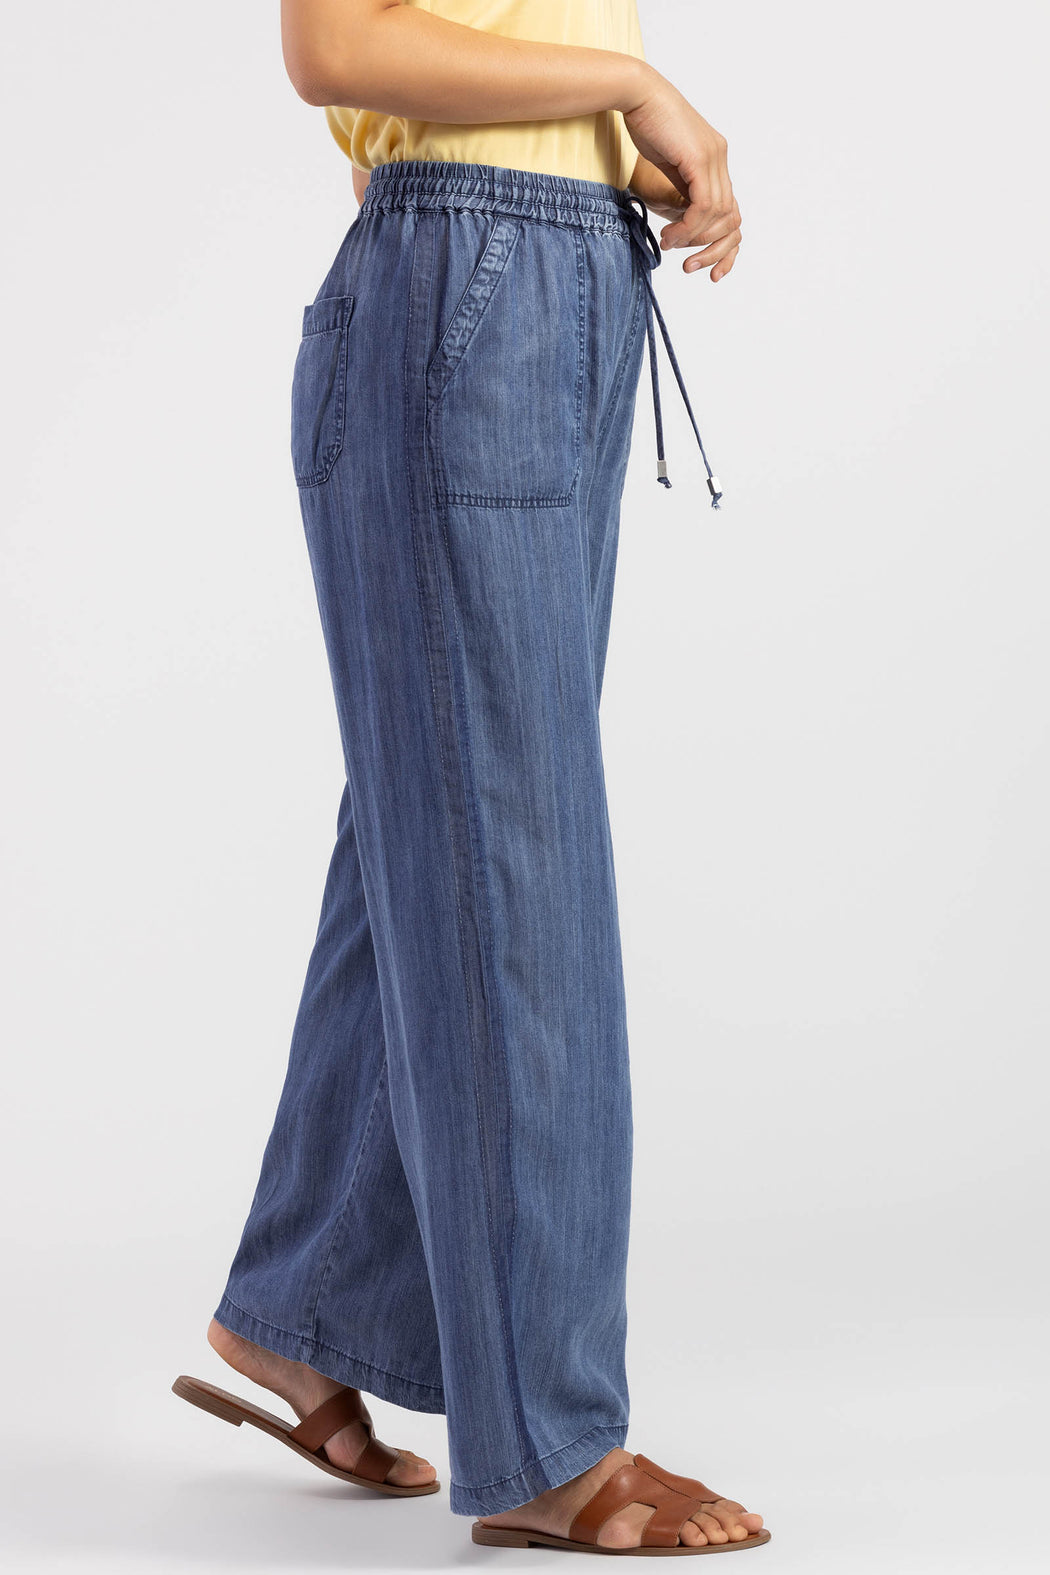 A darker-wash stripe running along each leg sets these flowy palazzo pants apart. Light as air with a drawstring waist, they're perfect for warm-weather days that call for loose and lightweight options.